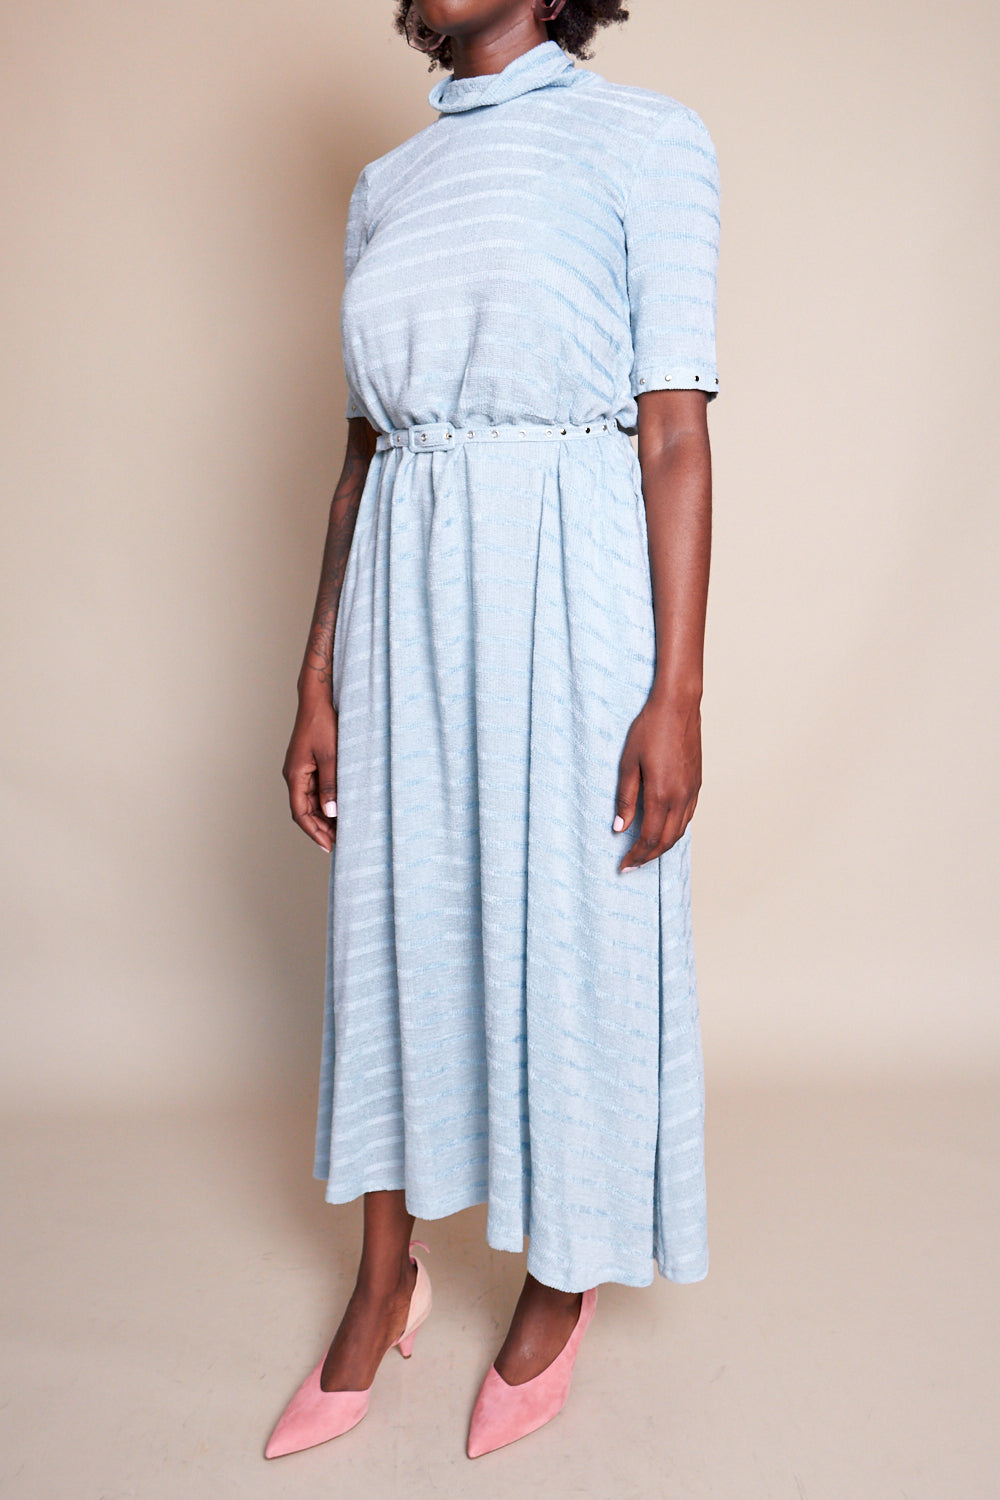 Sola Dress in Seafoam